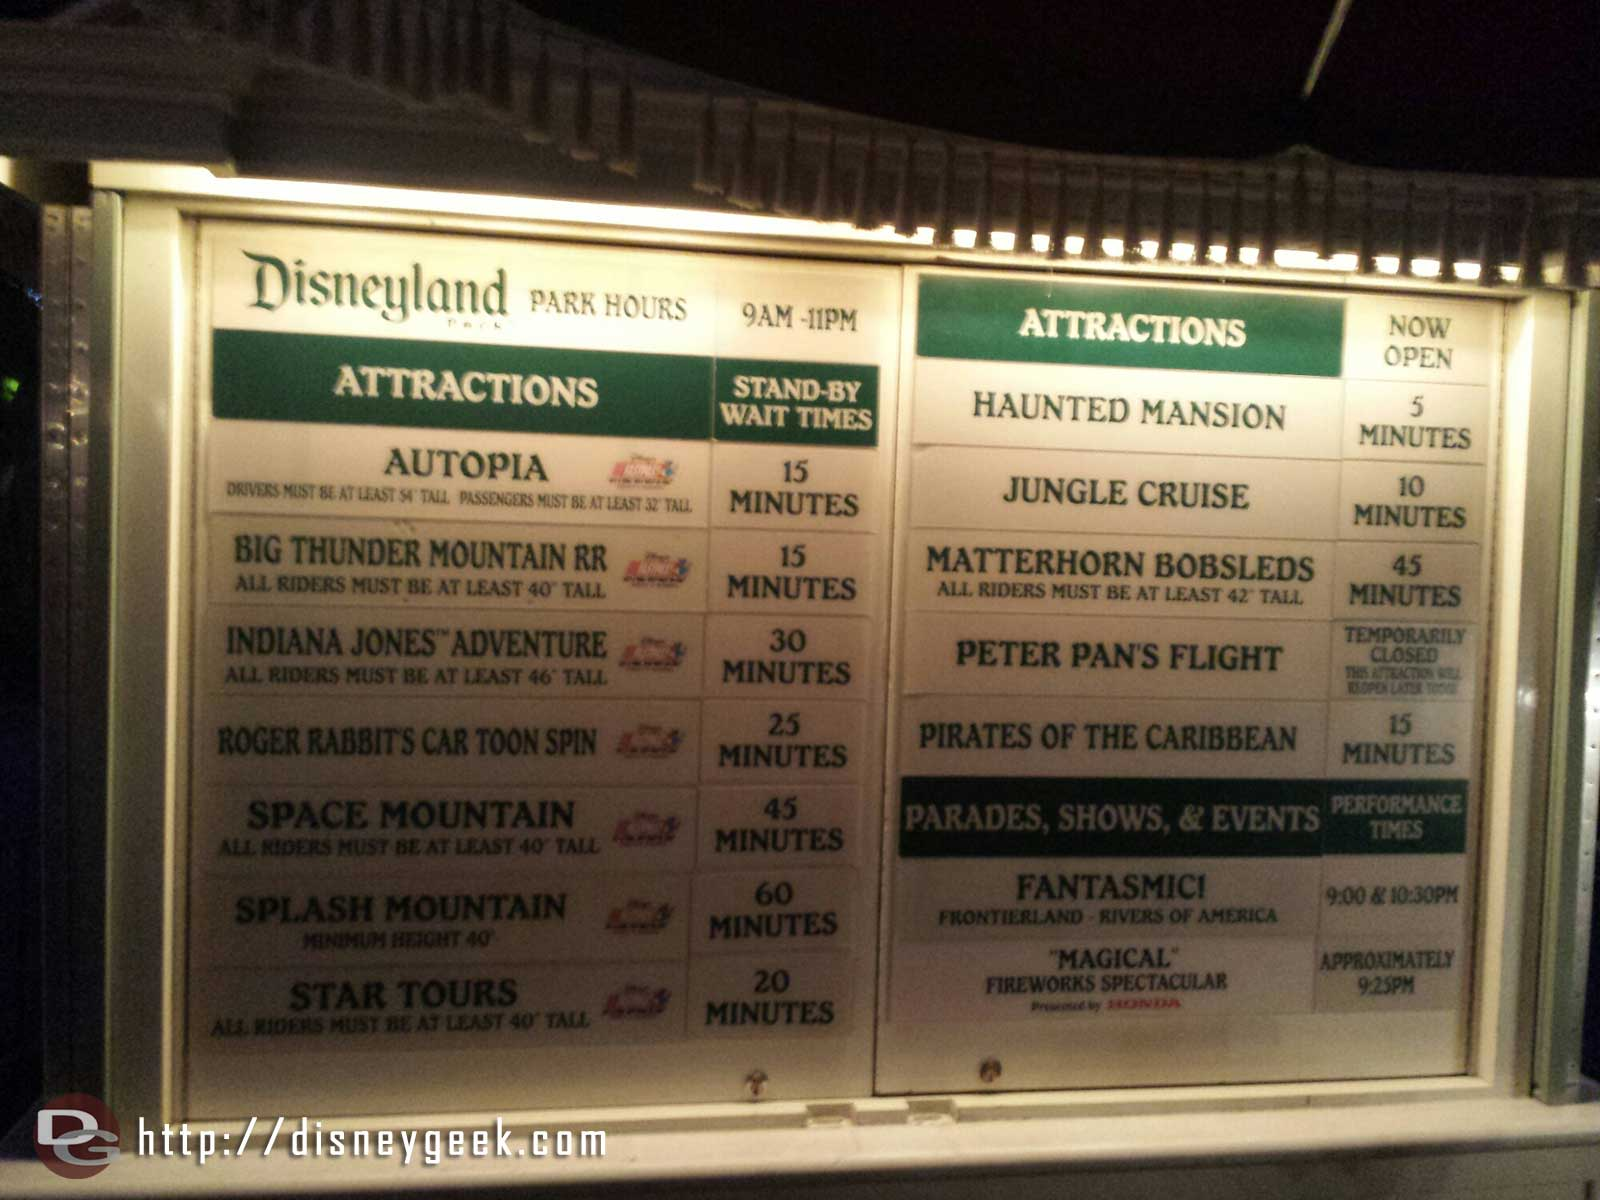 #Disneyland wait times at 8:00pm